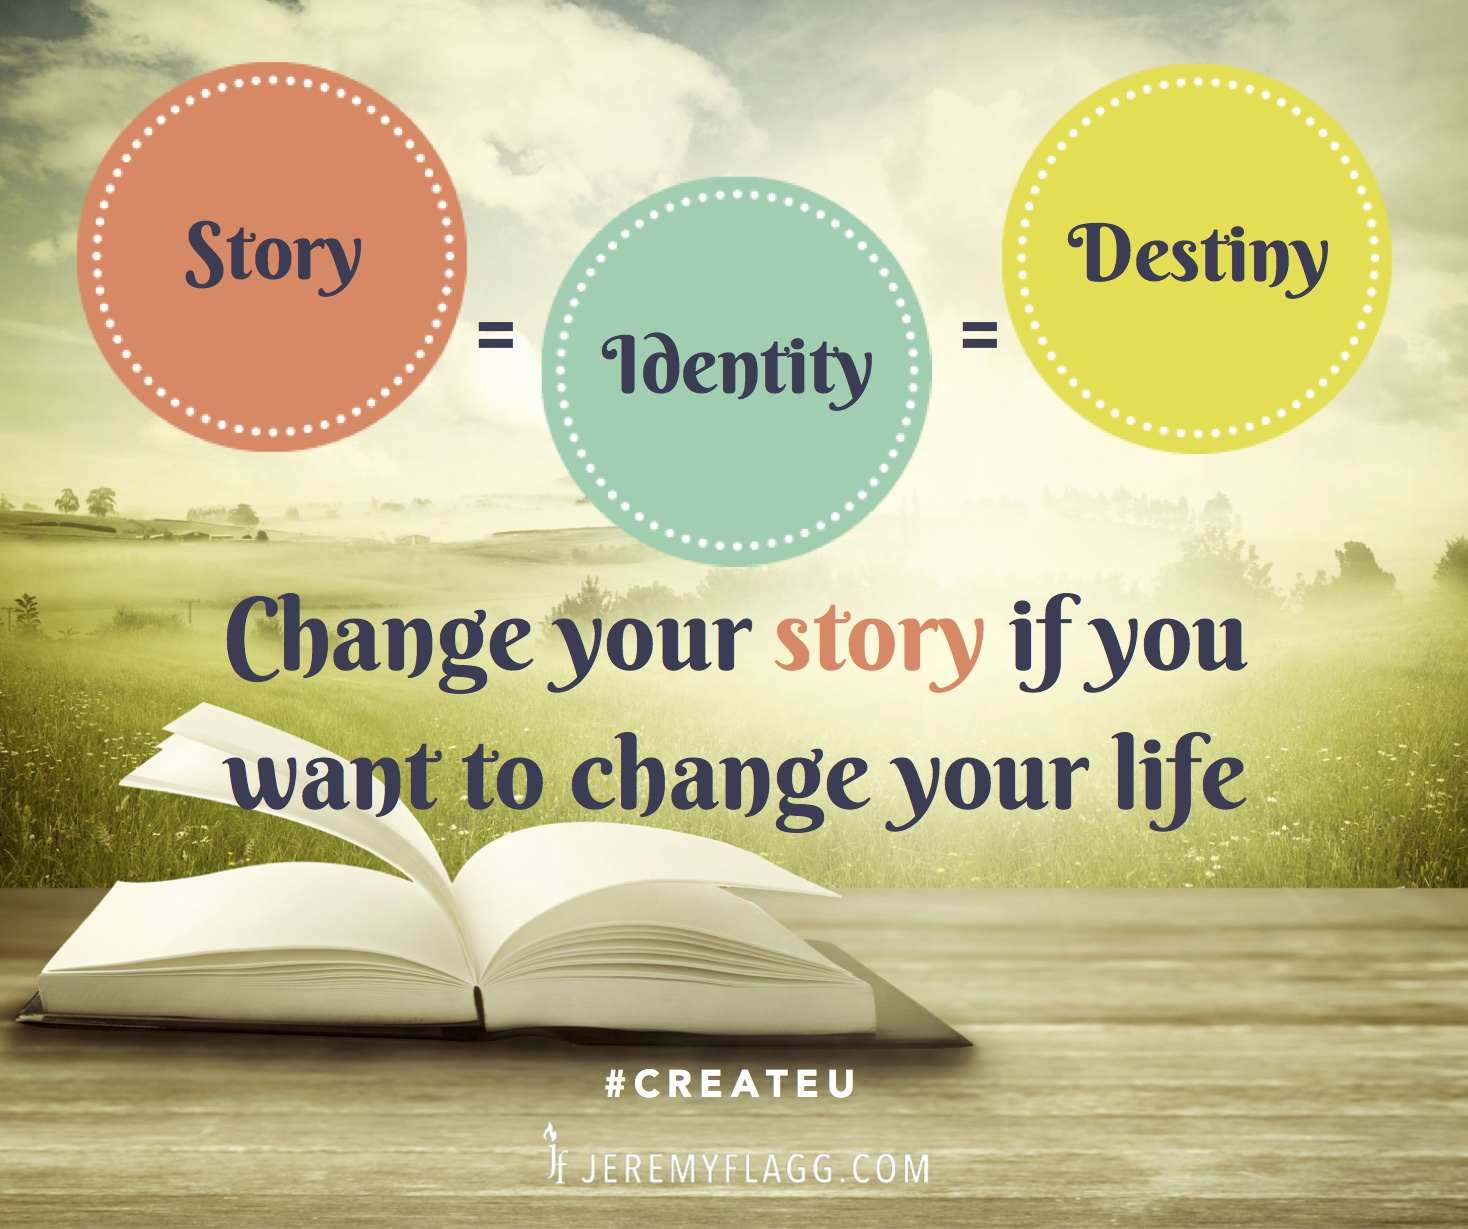 Change-Your-Story-quote-Jeremy-Flagg-FB